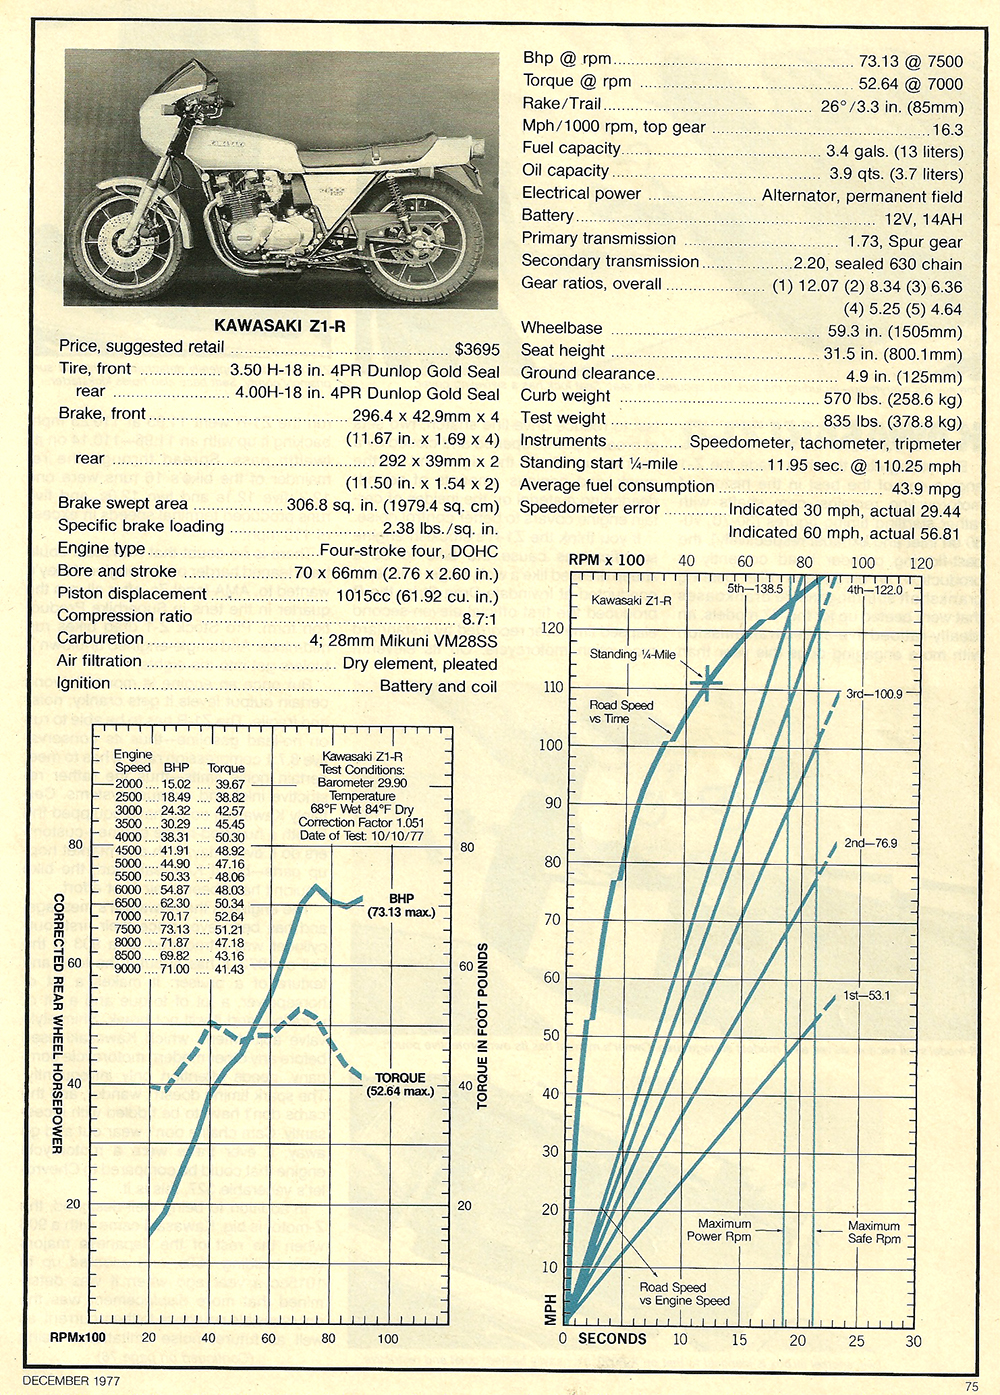 1977 Kawasaki Z1R road test 06.jpg